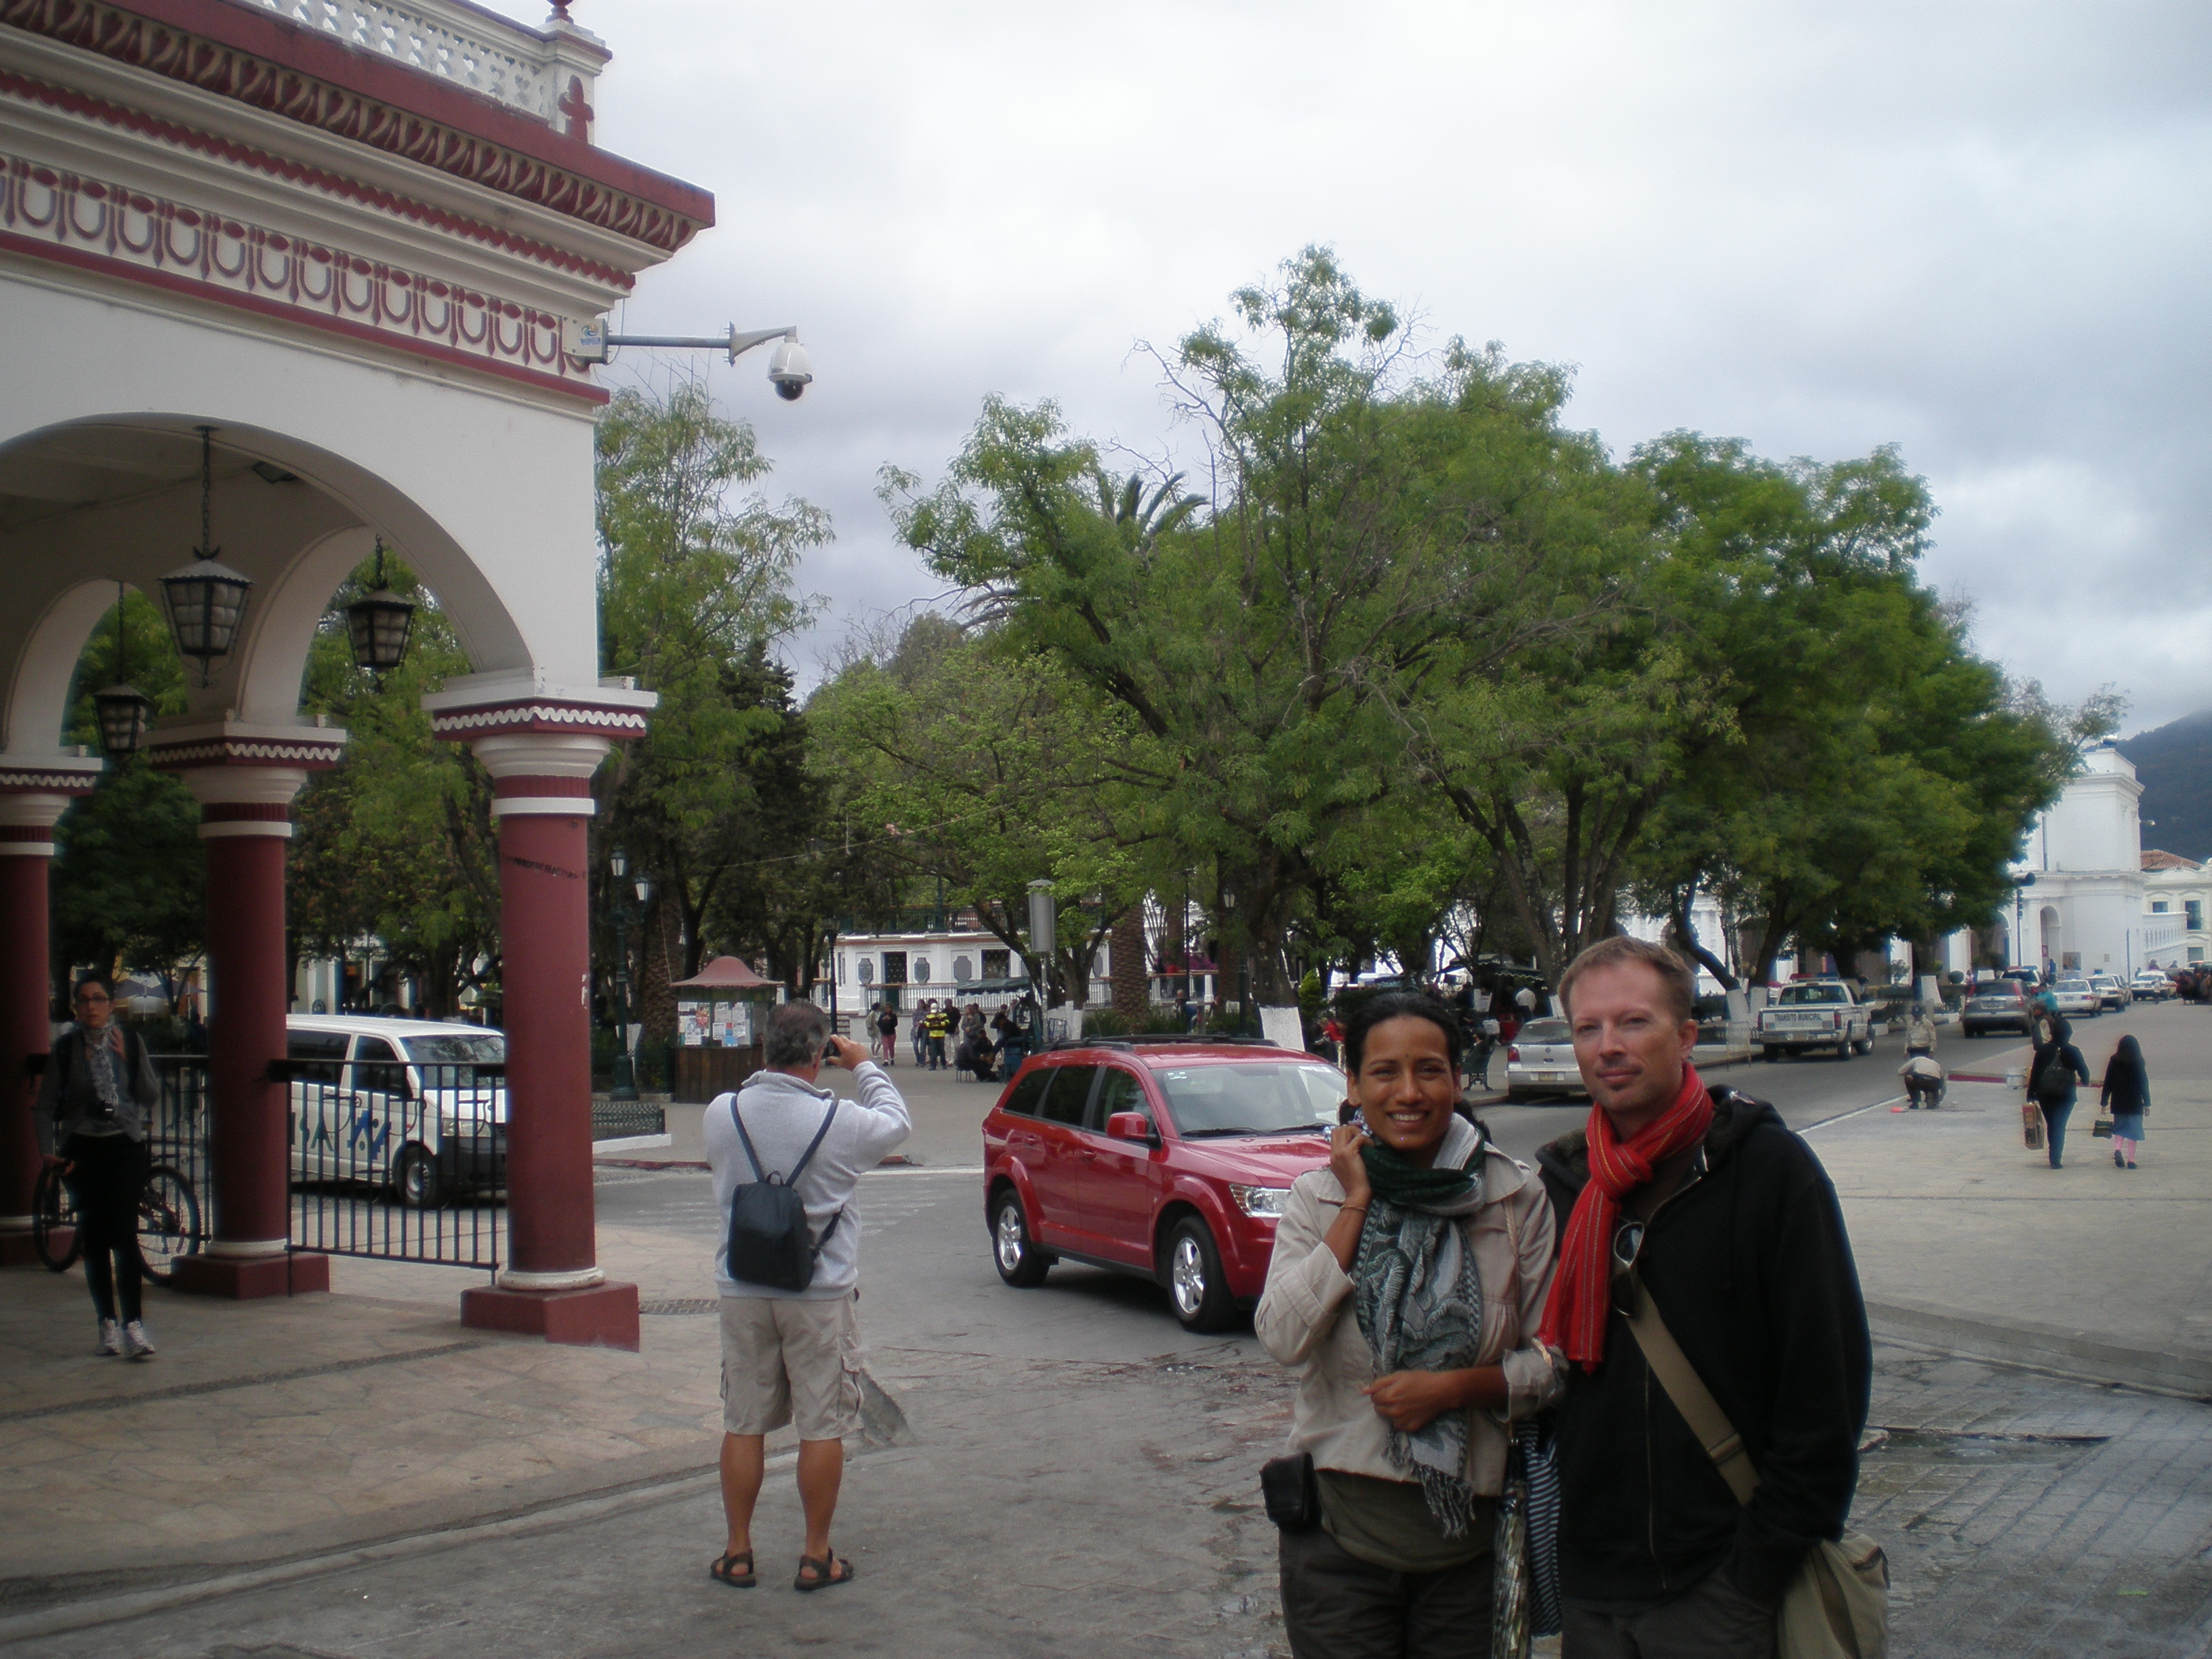 Cris and Tim in San Cristobal de las Casas